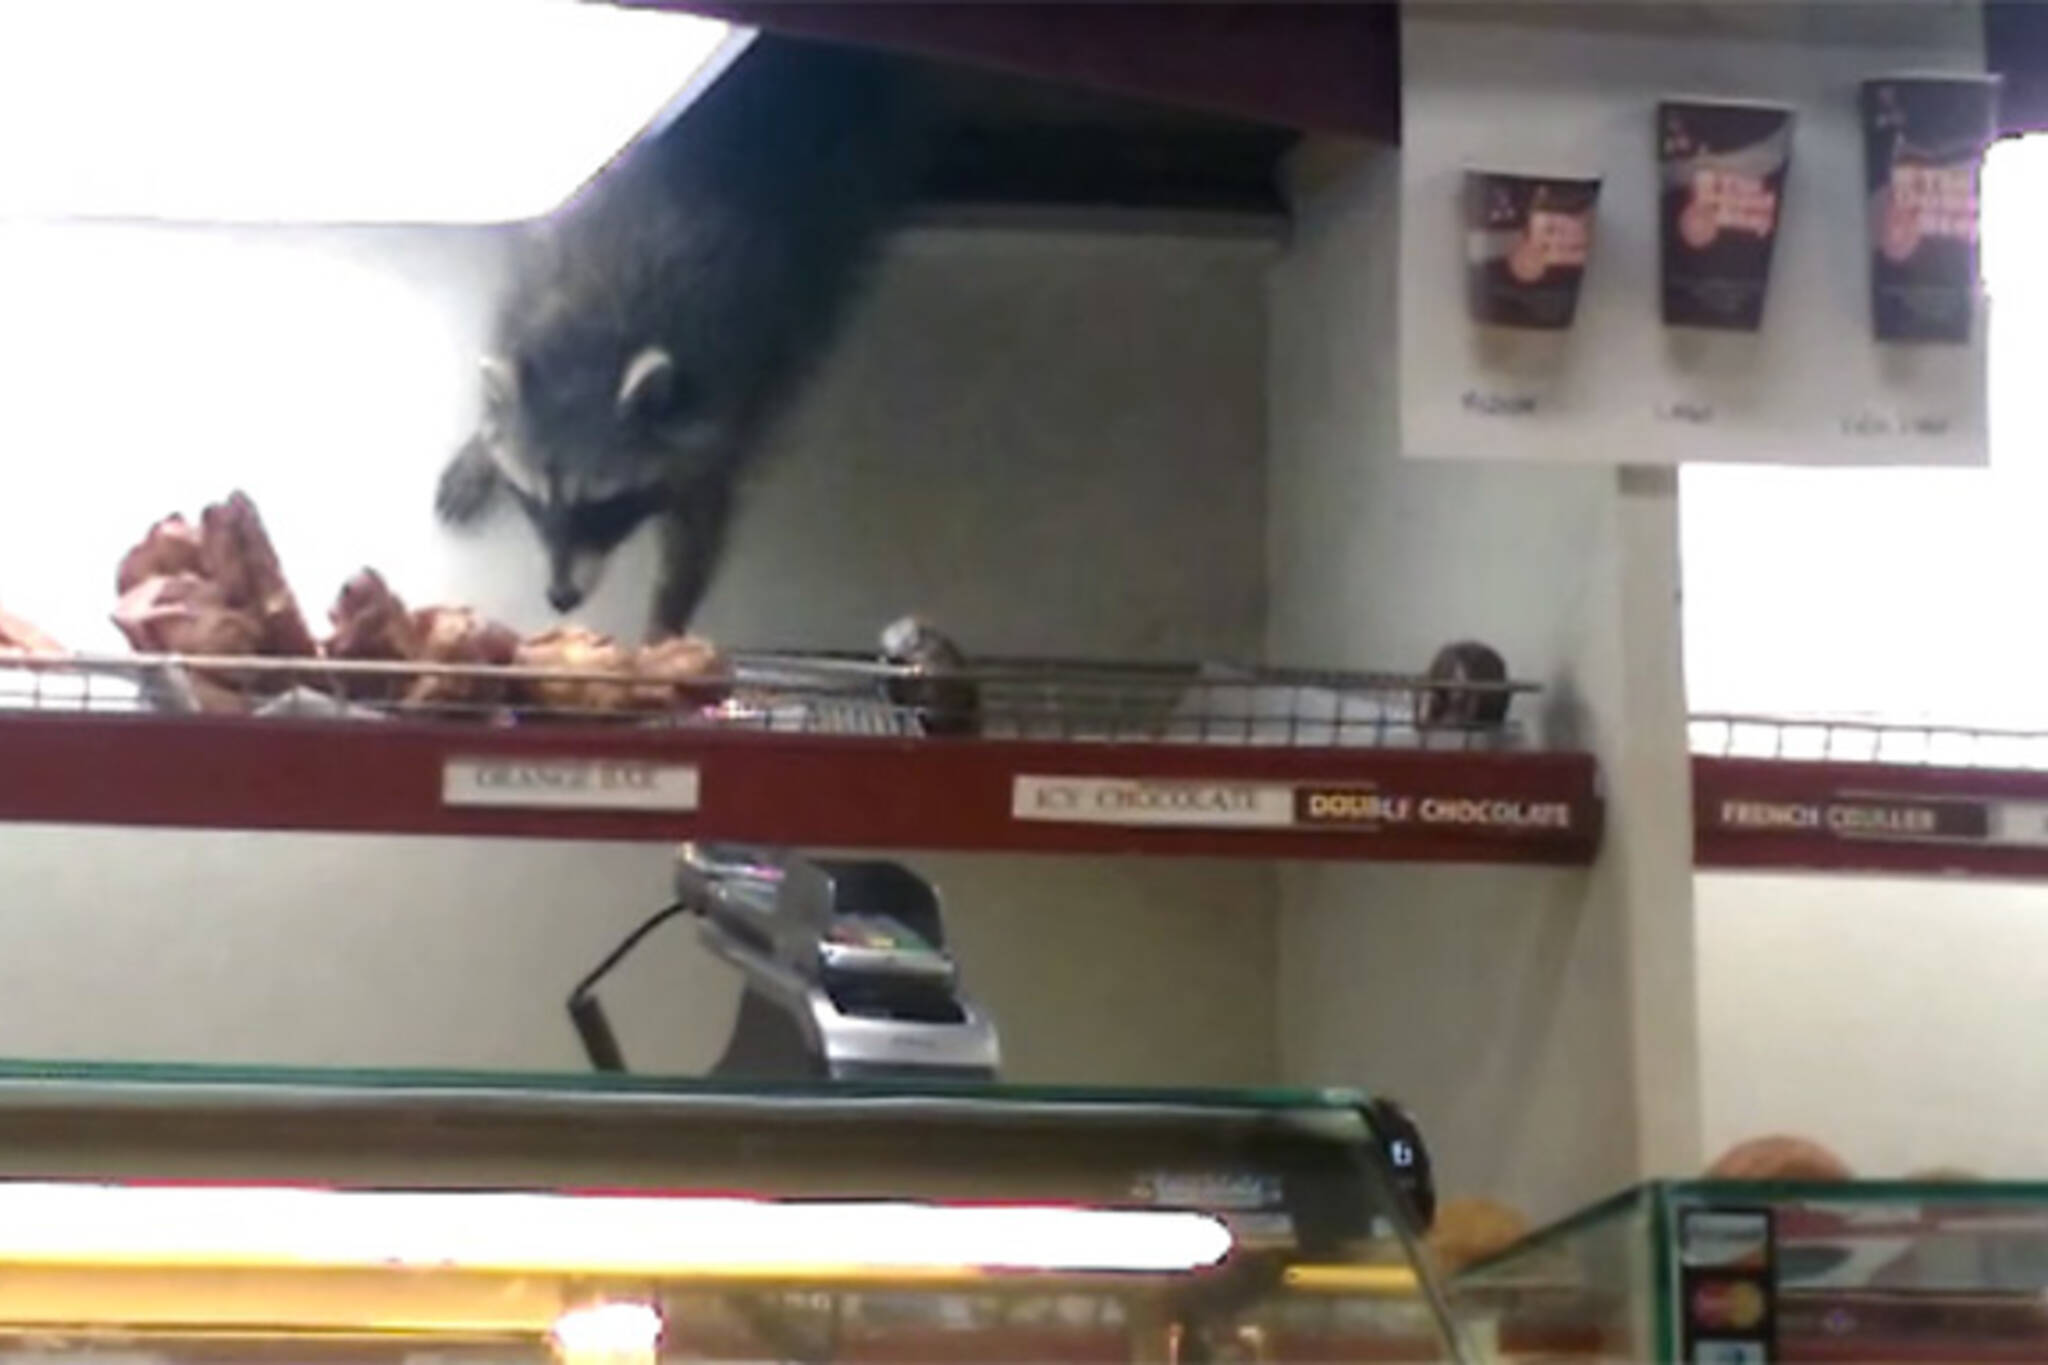 raccoon donut thief toronto